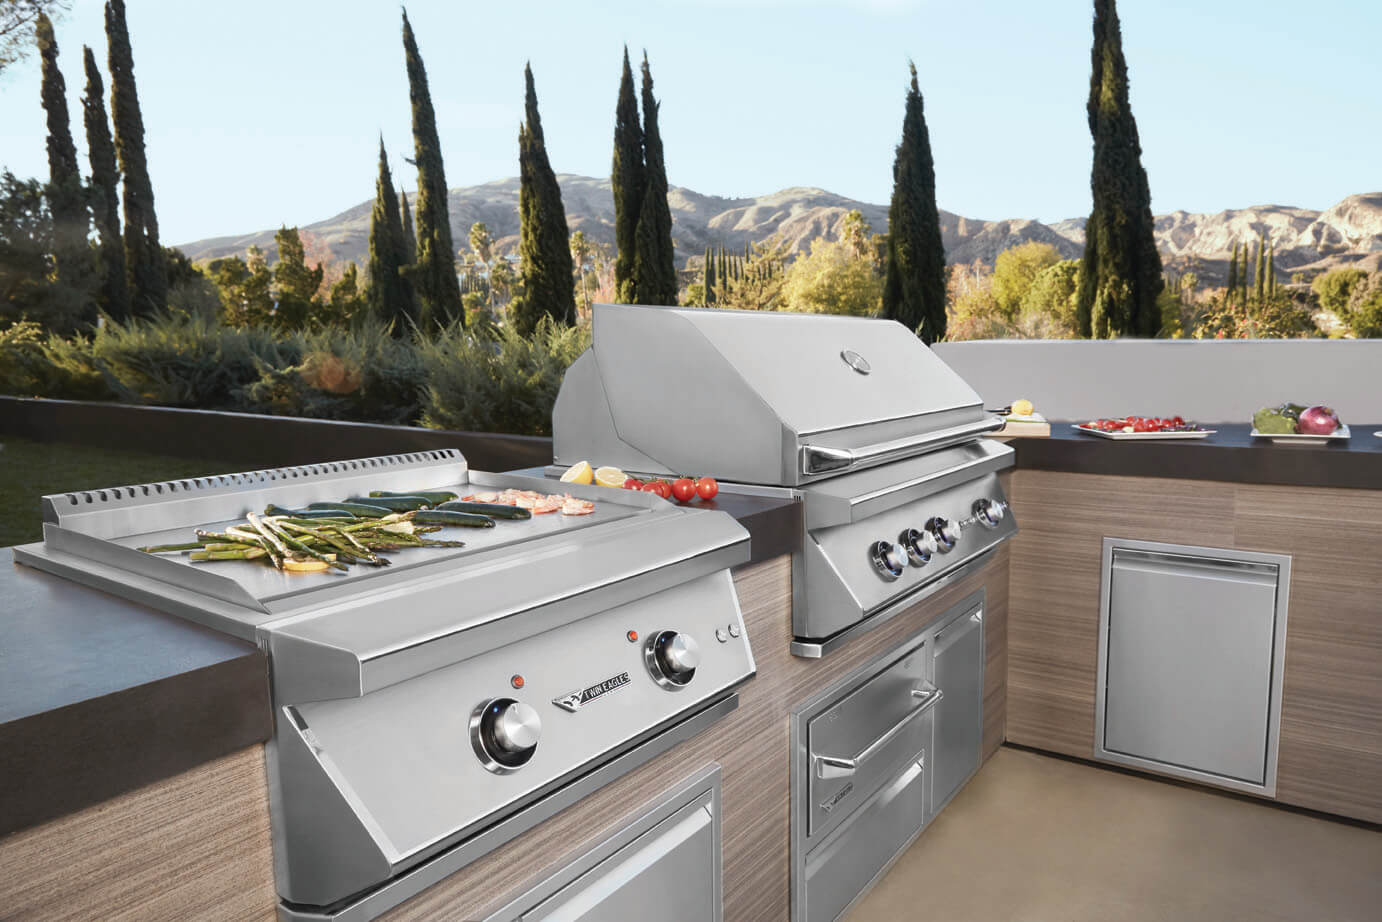 Twin Eagle outdoor kitchen Premium grill cooking asparagus and peppers